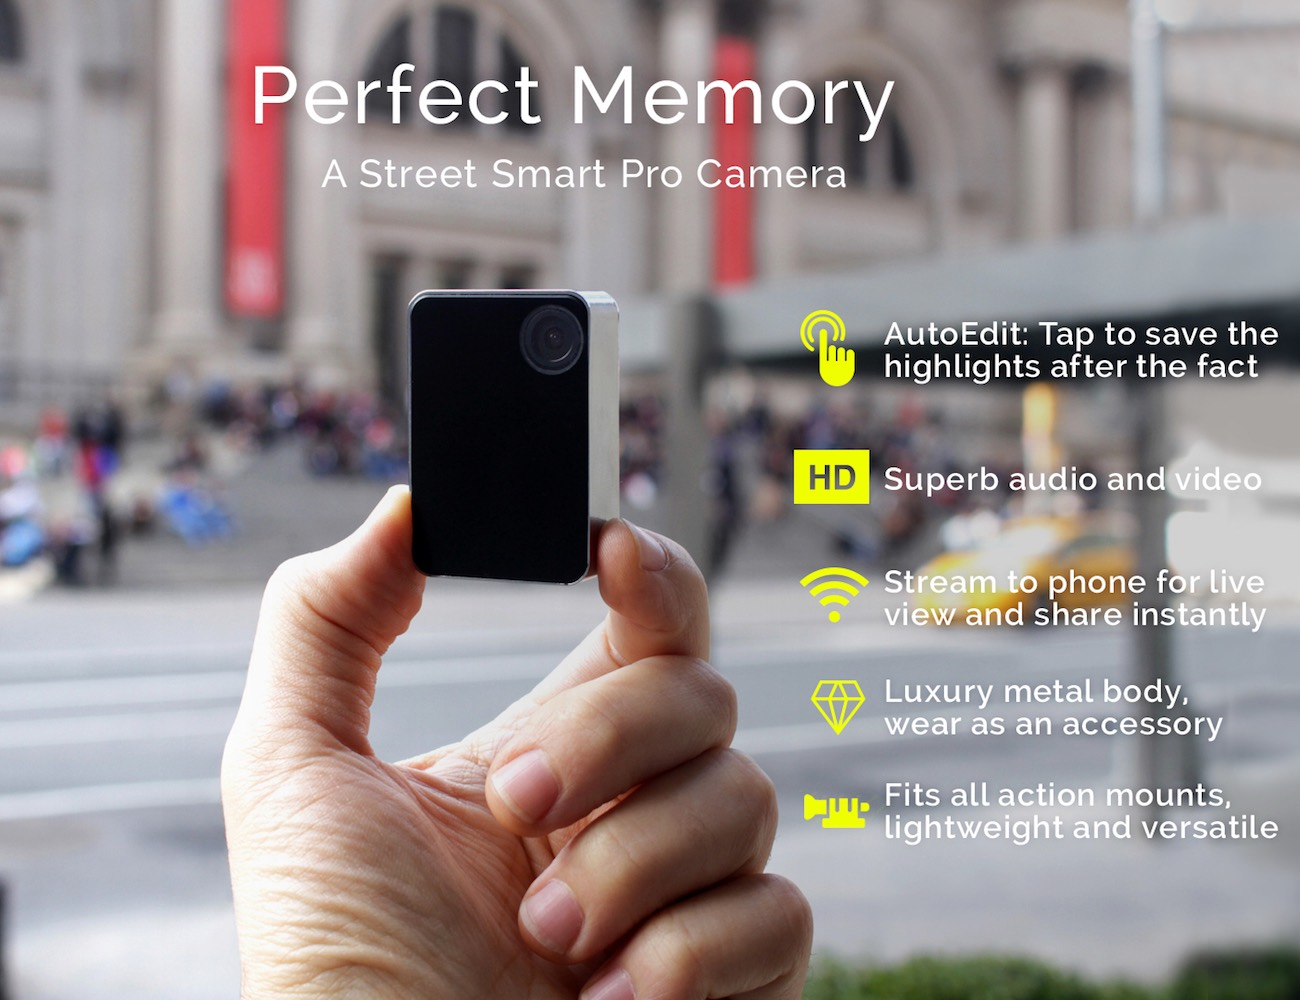 Perfect Memory Camera – Precision Built, Pro Grade